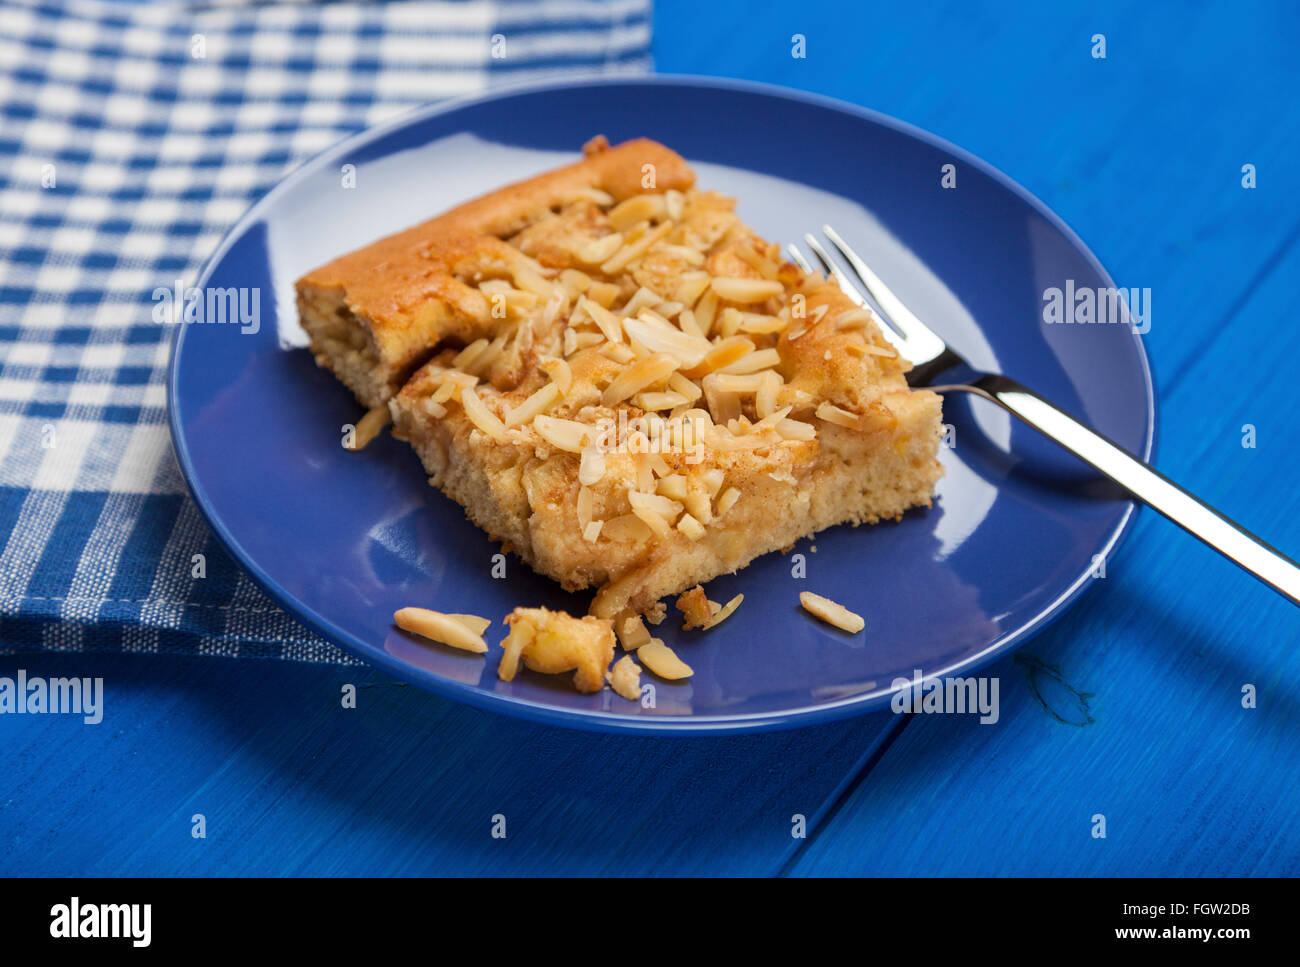 Piece of apple cake with almond slivers on blue plate and checkered napkin on wooden blue table - Stock Image